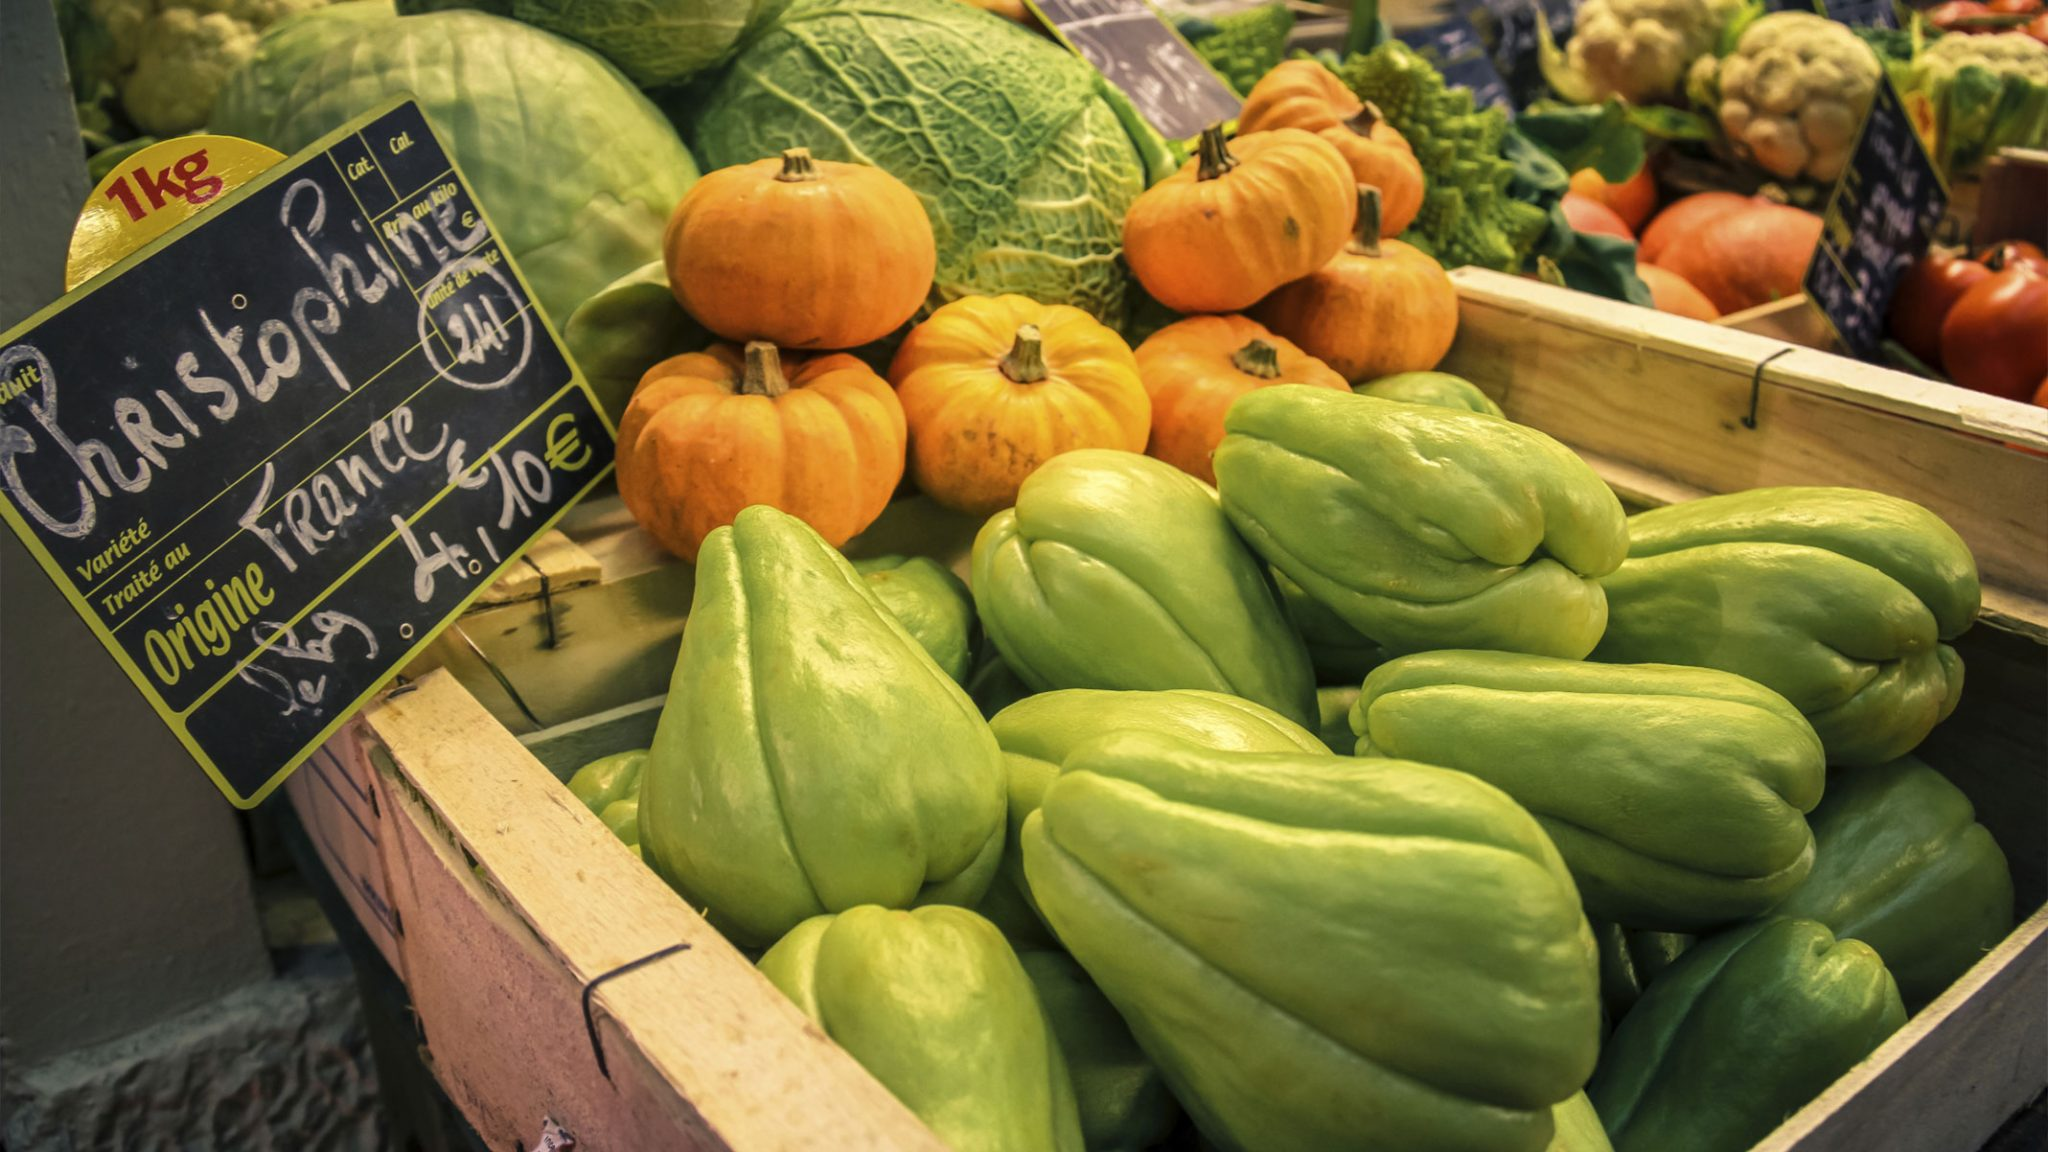 Tour a traditional French market in Paris